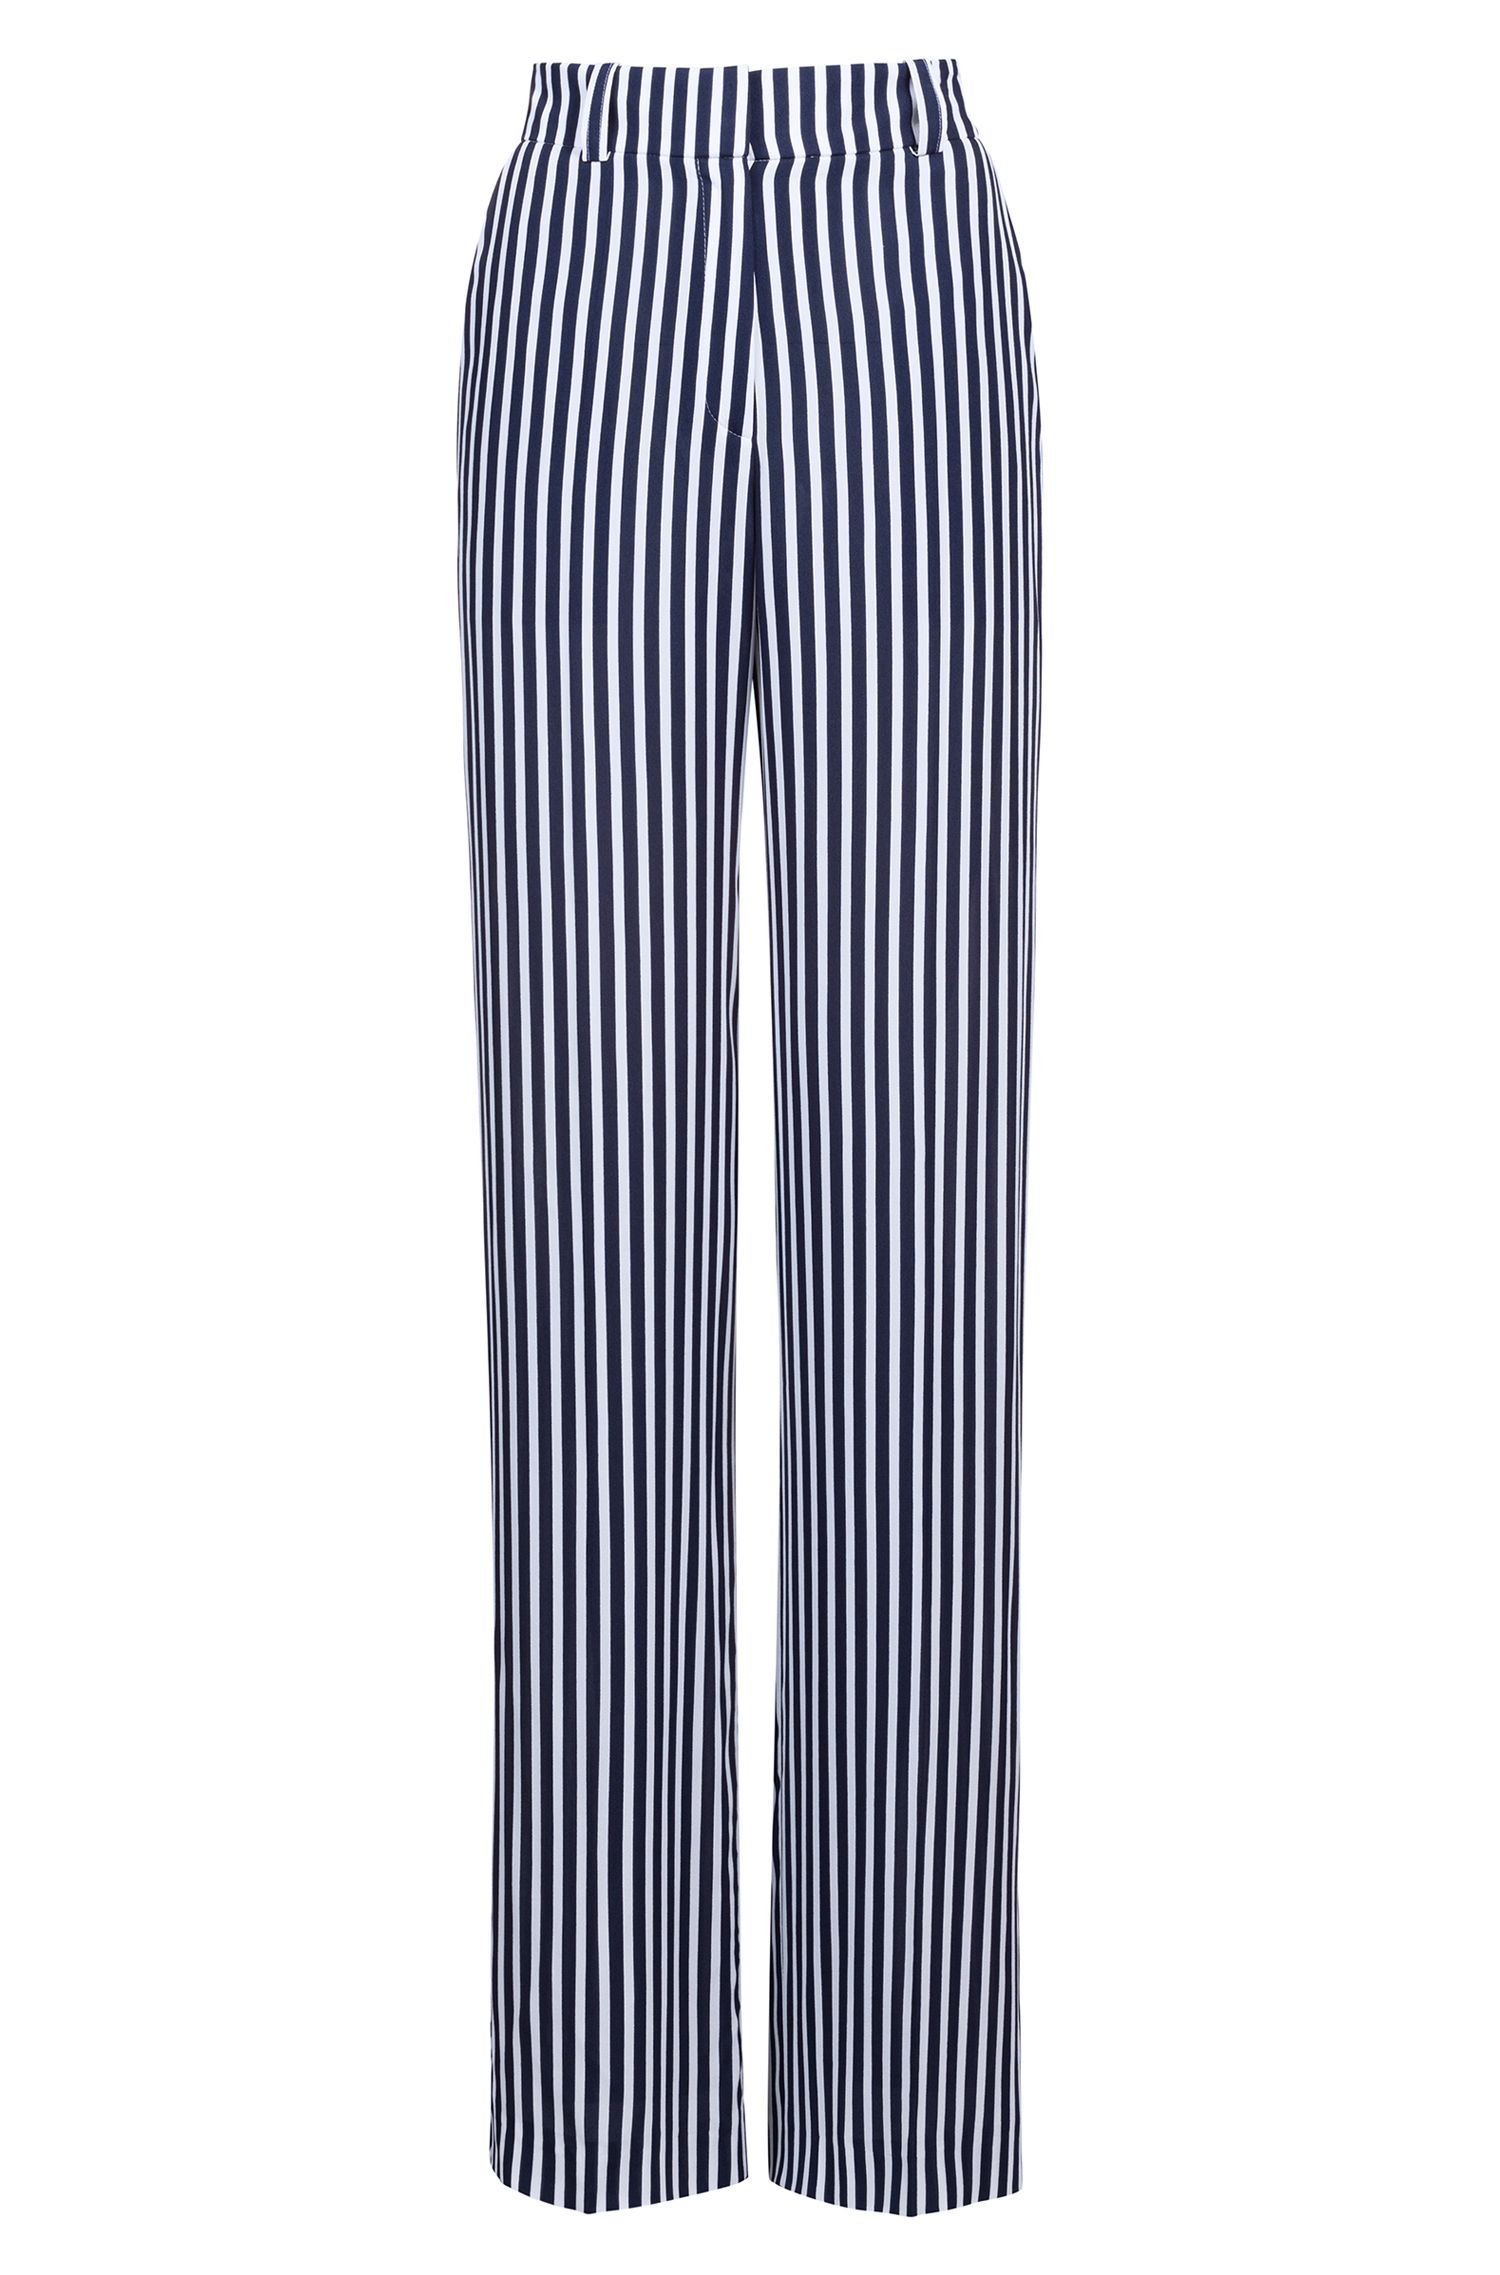 Wide-leg striped trousers with high-rise waist, Patterned